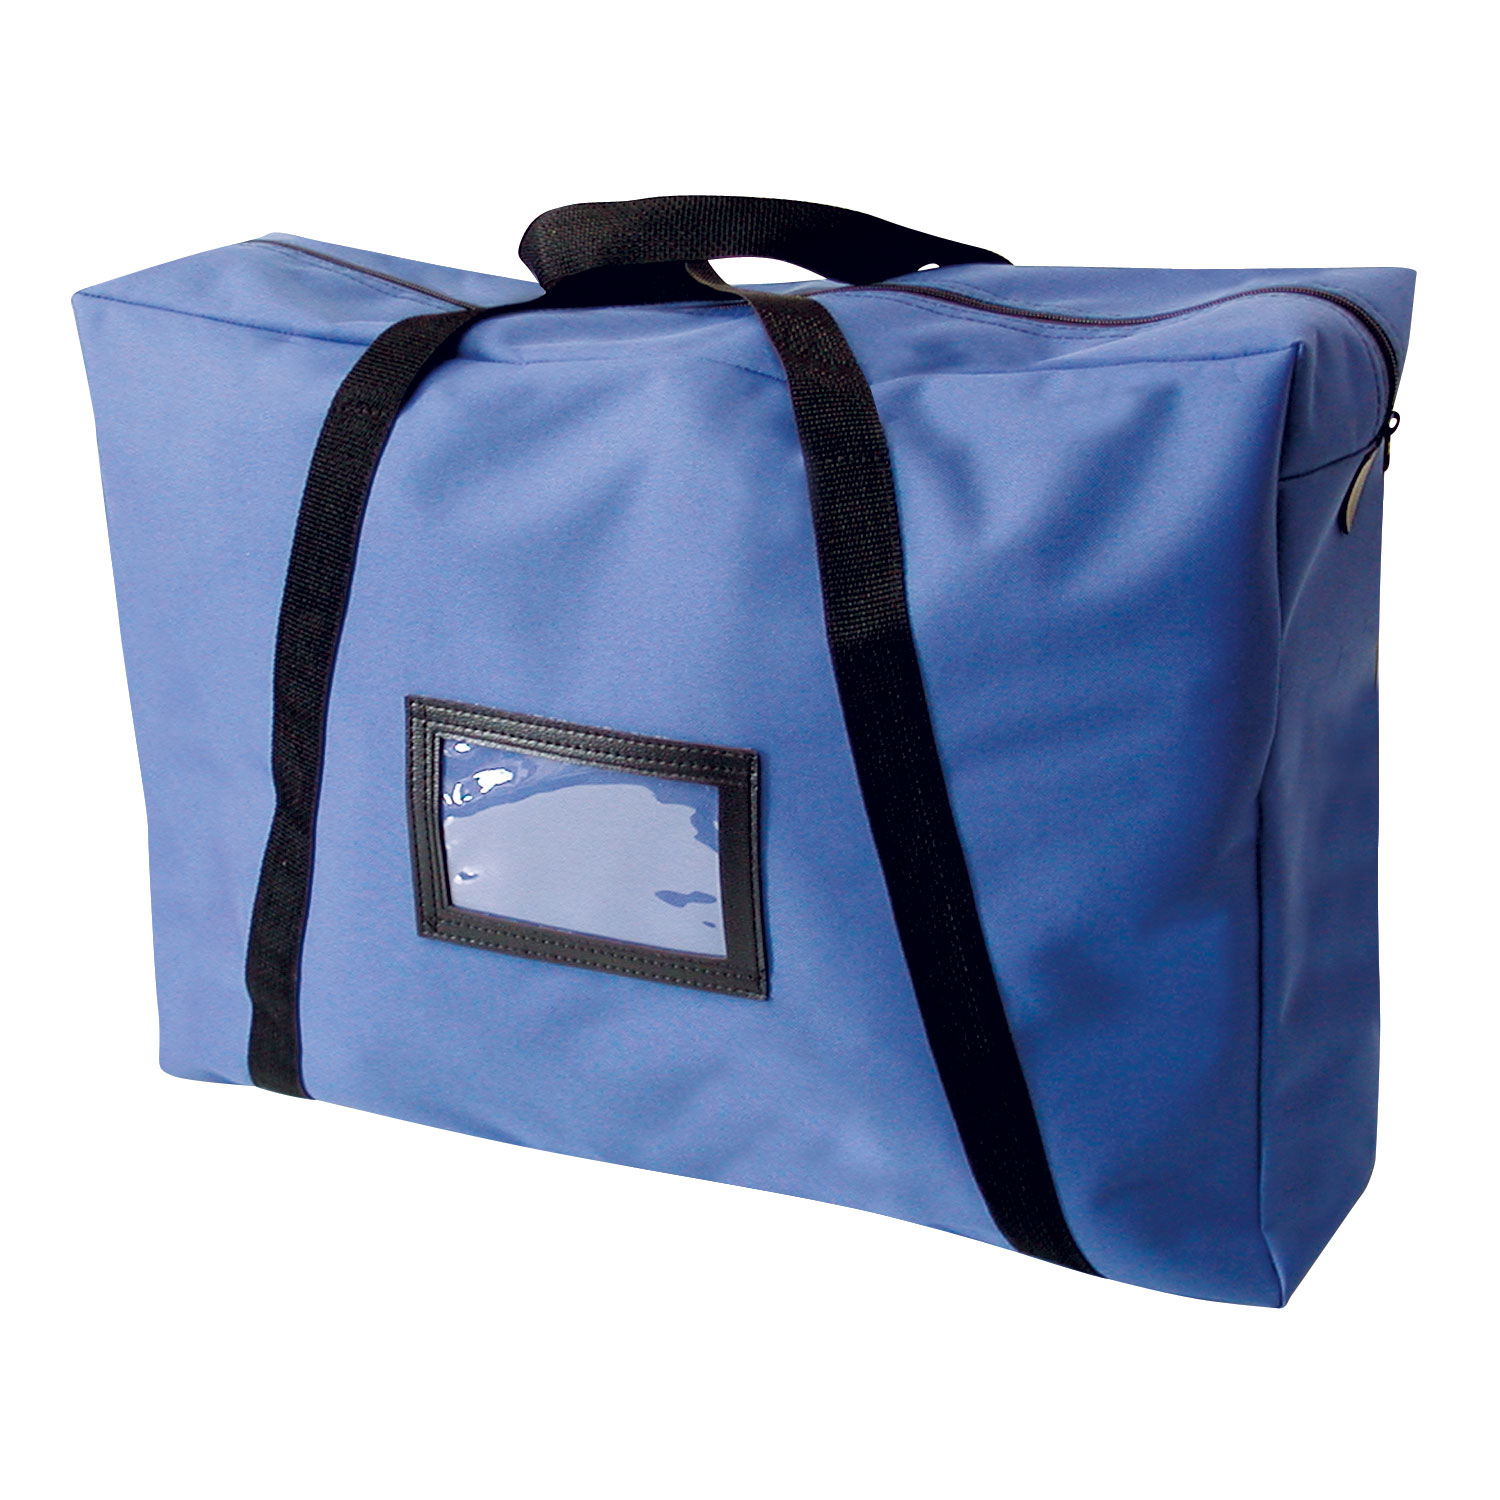 Zipper-Transport-Bag